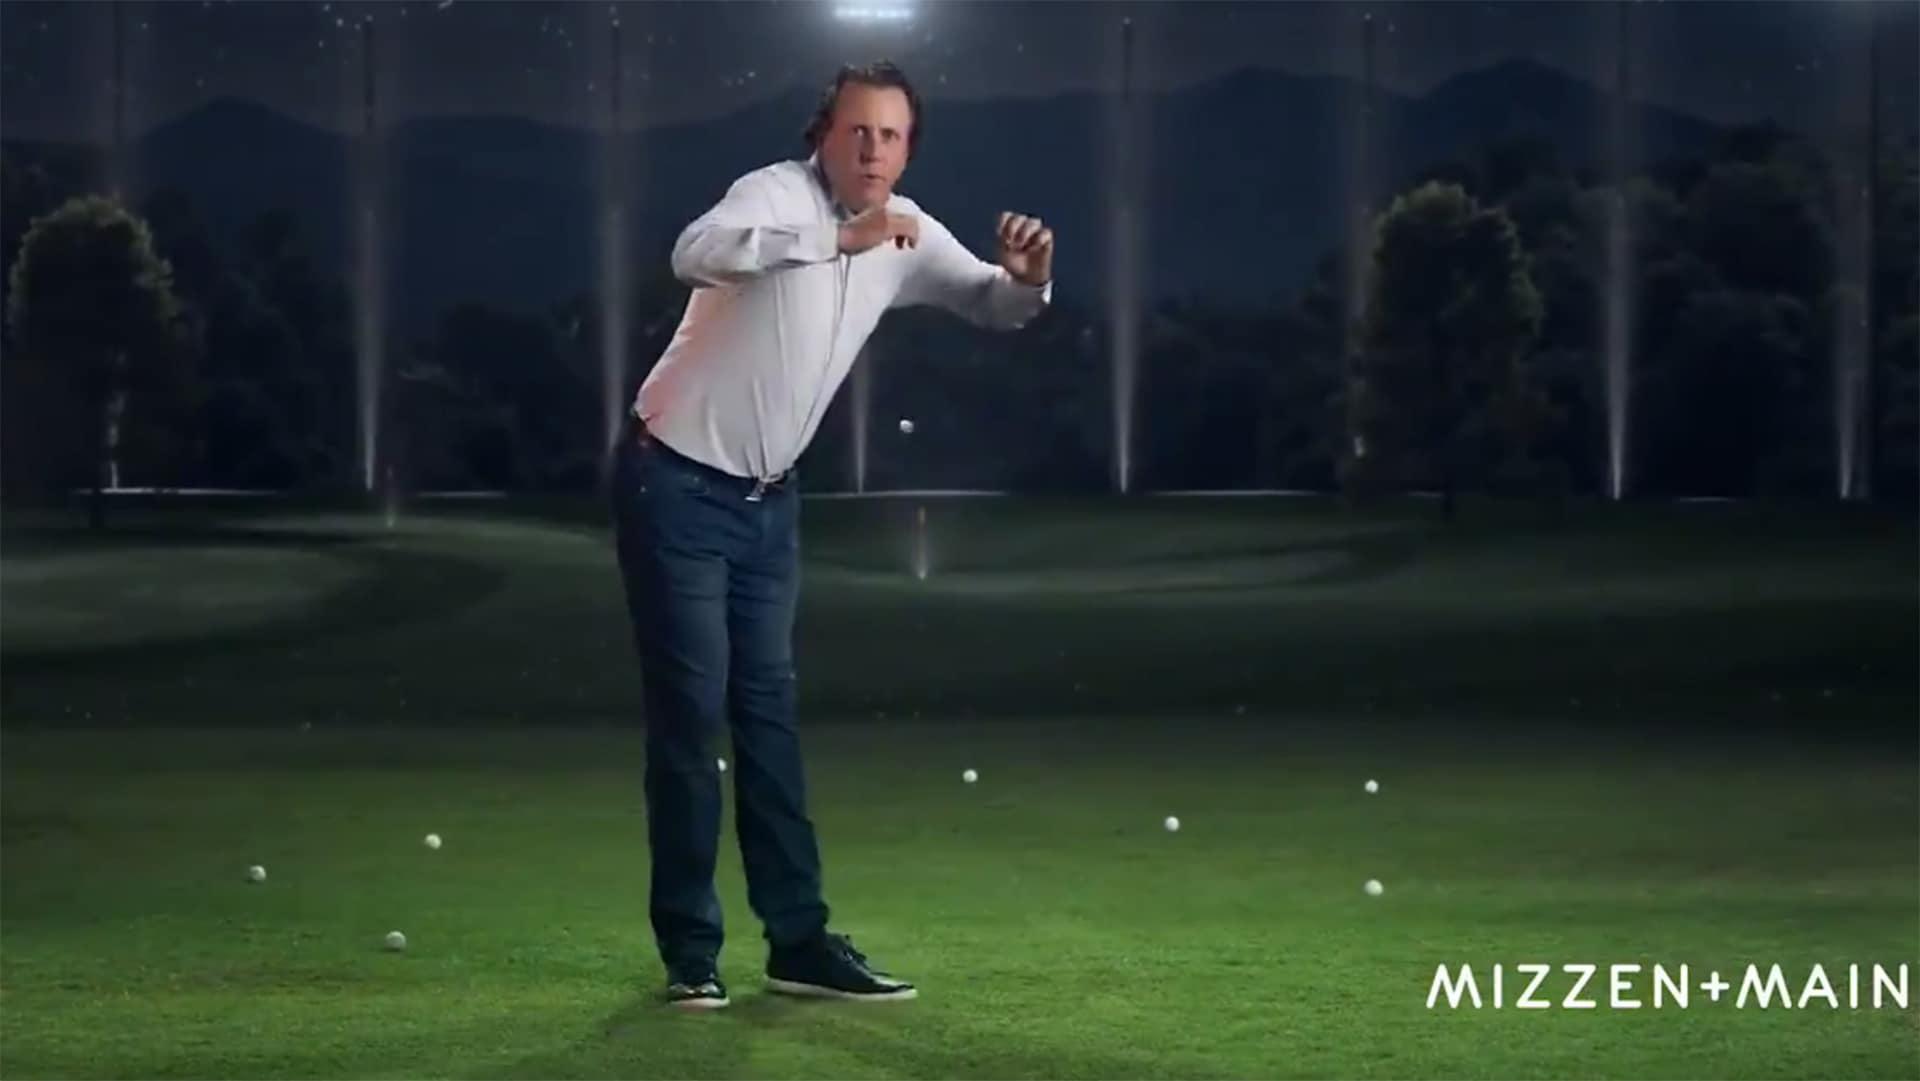 Phil Mickelson dancing in a Mizzen+Main commercial.